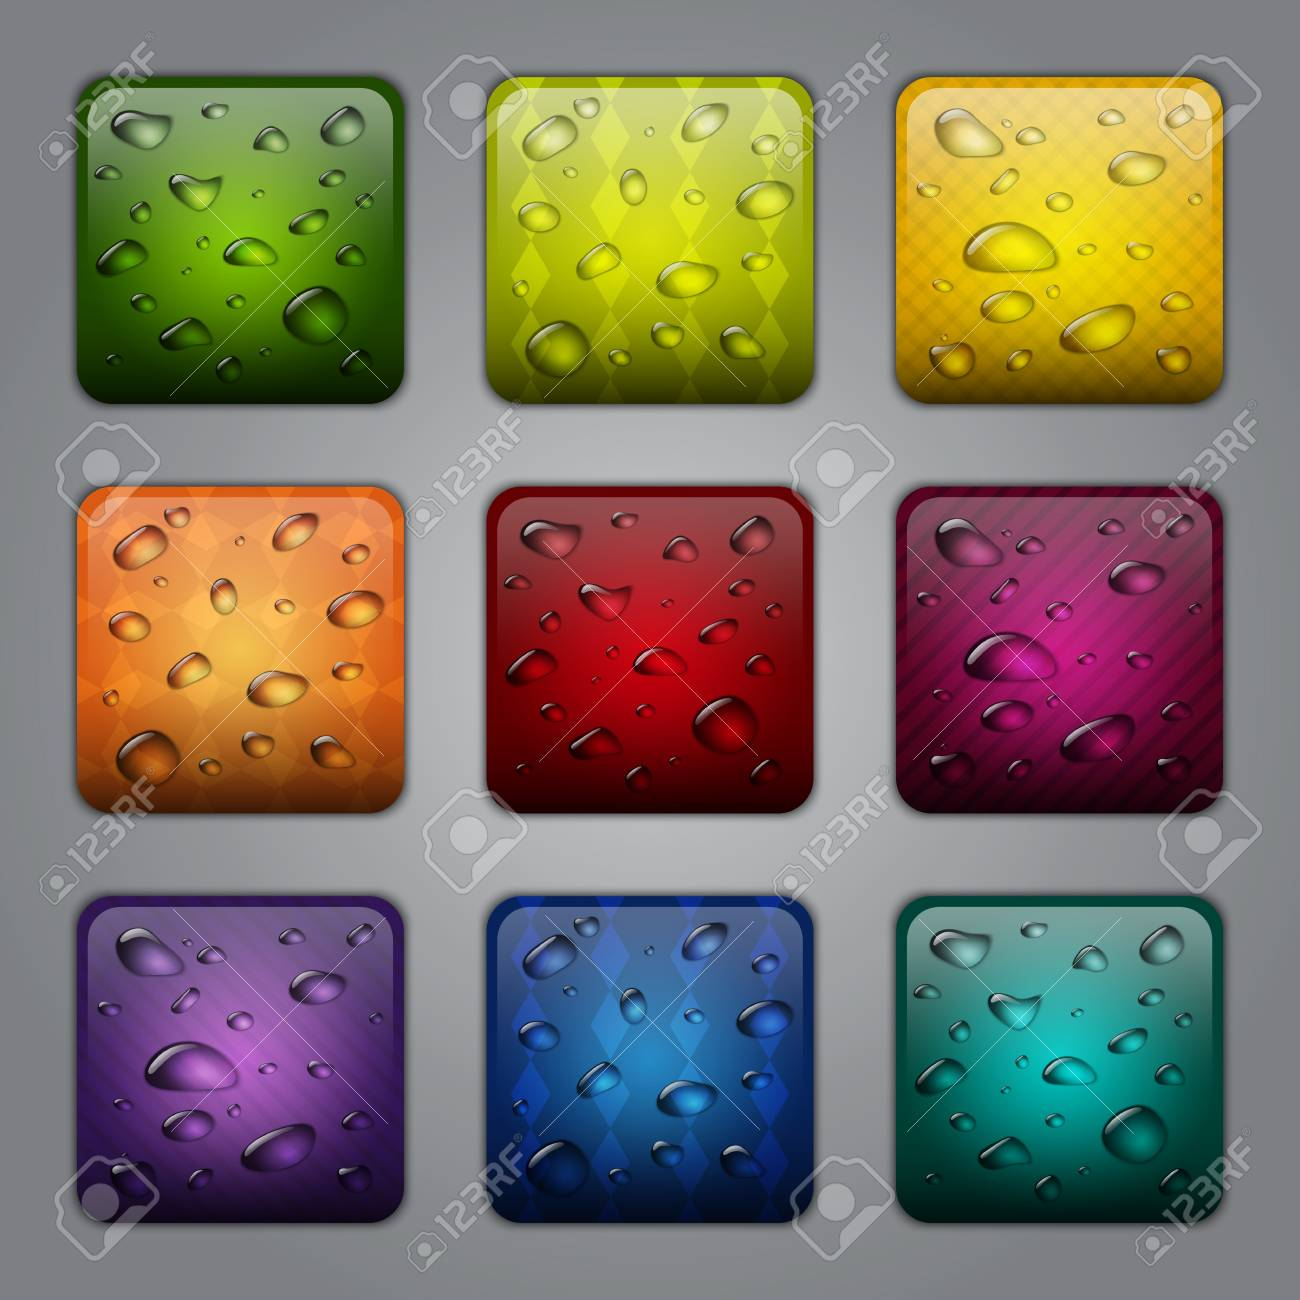 Textured application buttons with water drops - 16450901